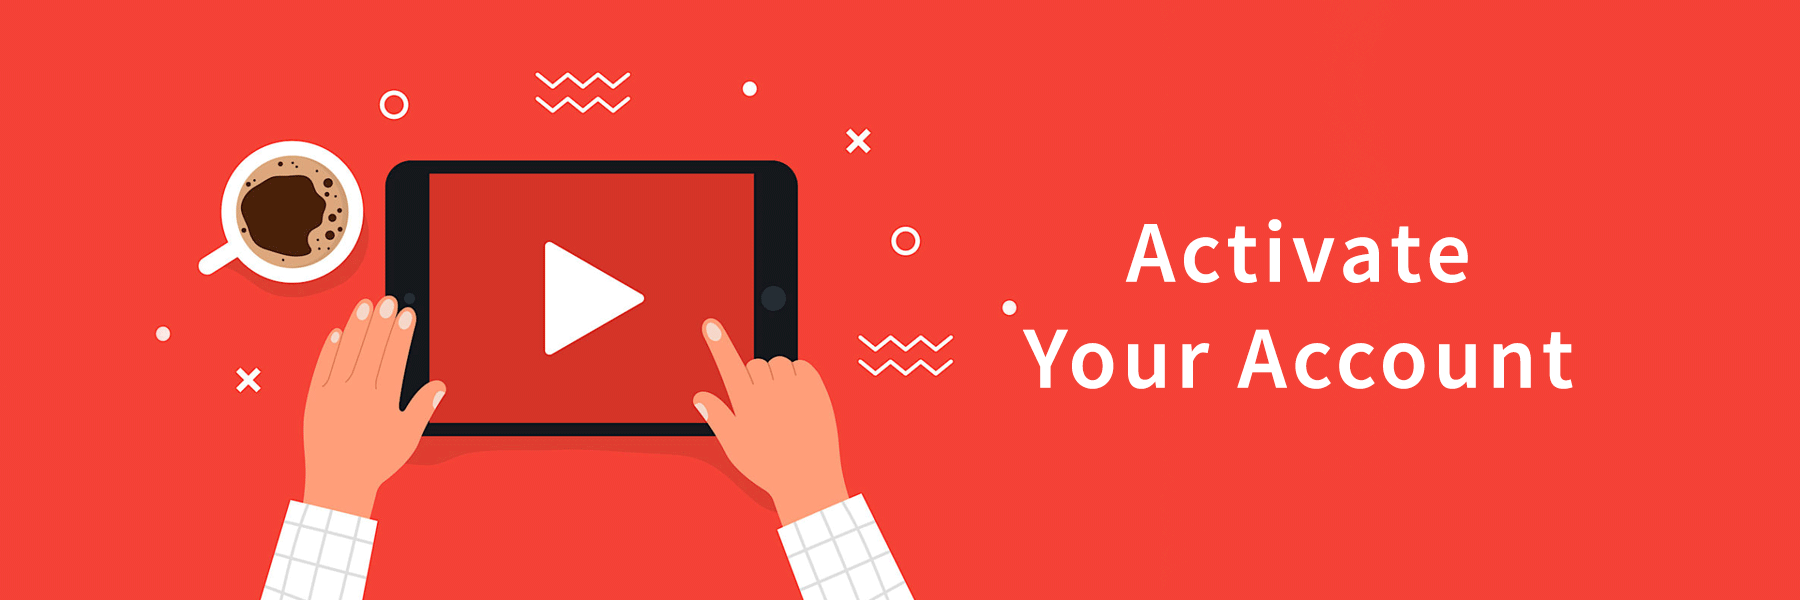 Youtube.com/activate - Within 2 Minutes Activate Your Youtube With Code